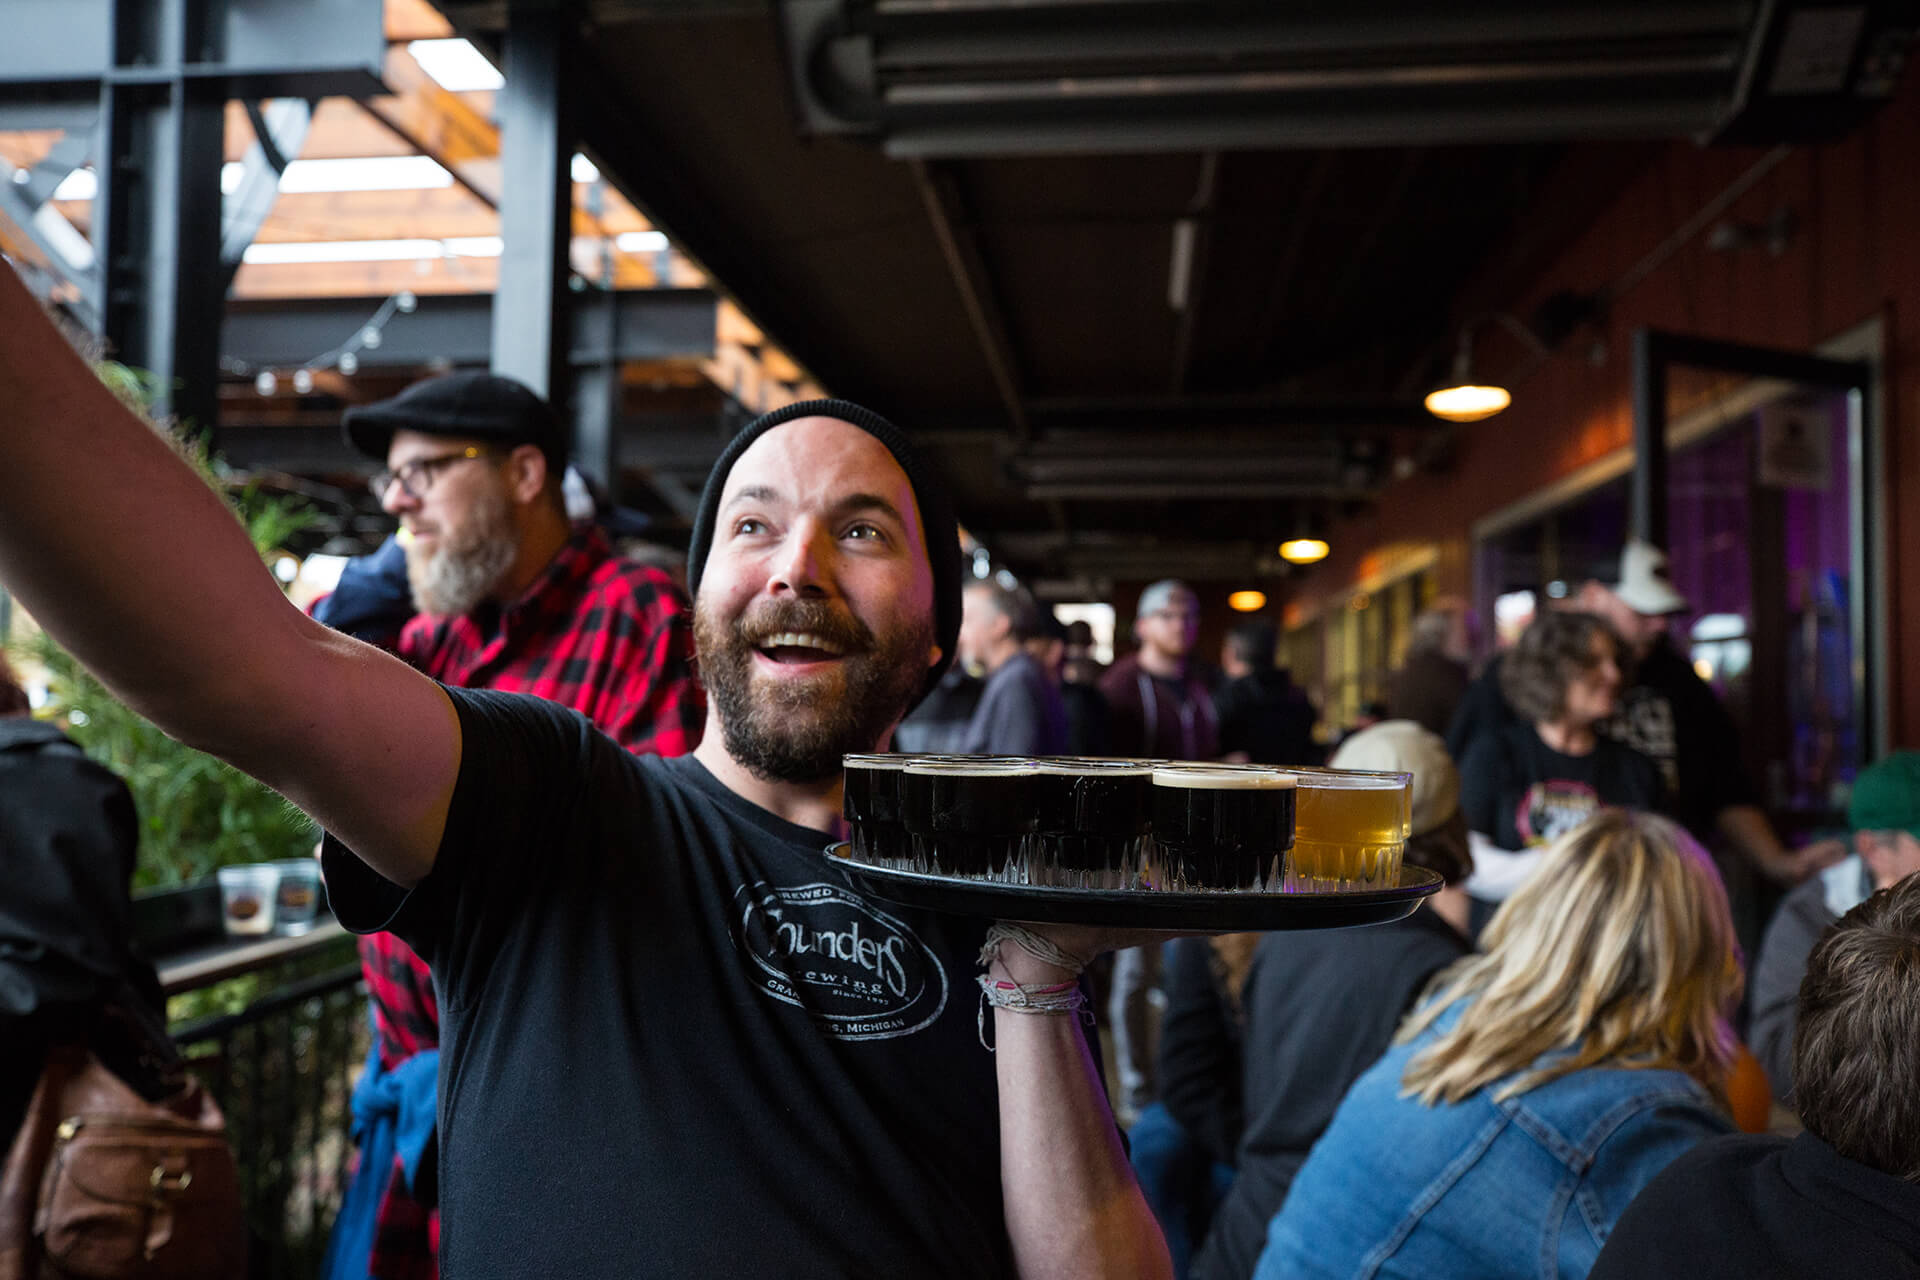 Bartender smiling with a tray full of beer with people at the taproom behind him